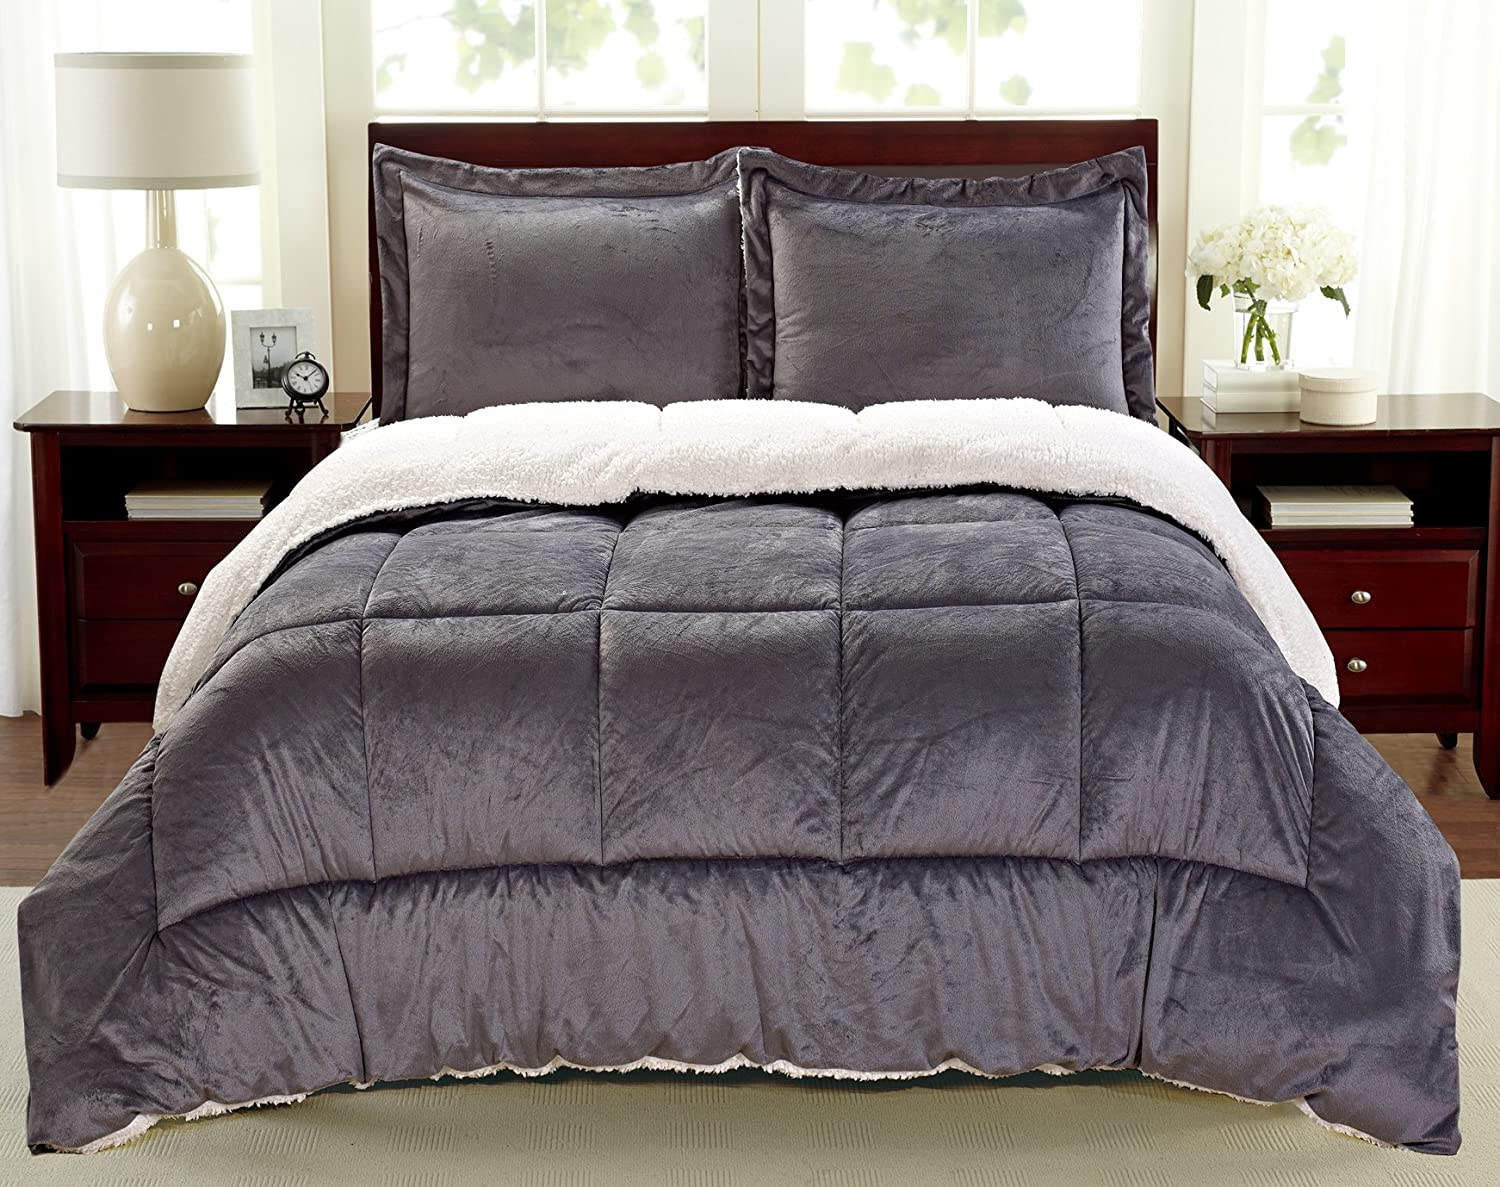 shop online url everyday luxe getimage your faux shopping fur way comforter shld